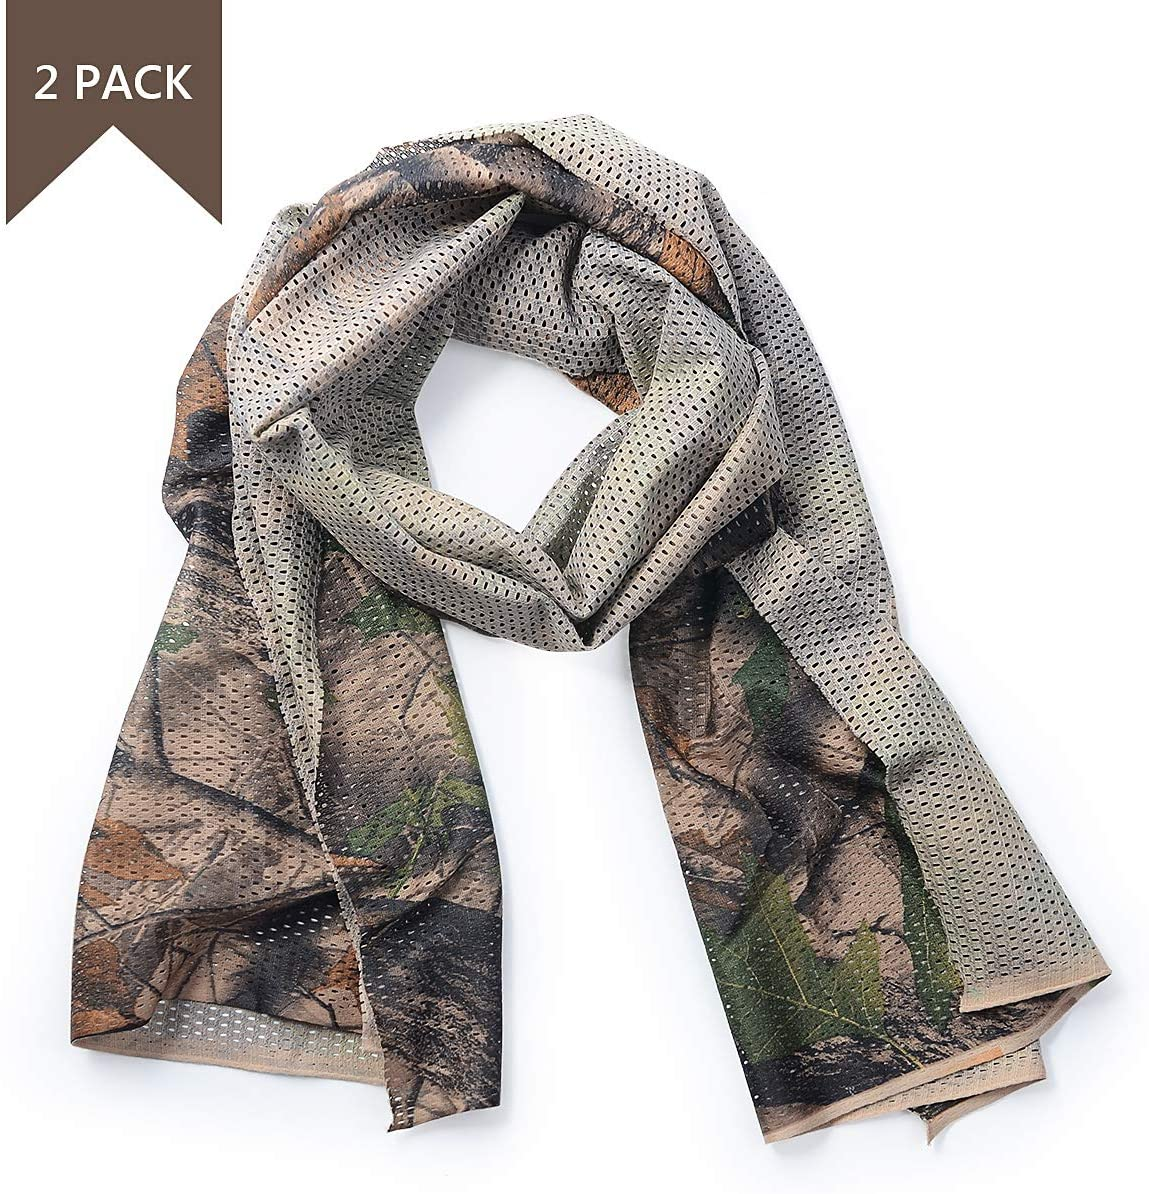 EAmber Camo Scarf Wrap Camouflage Netting Tactical Neck Warmer Neck Gaiter Face Mask Hood Headband Netting Mesh for Sports Outdoor Activities